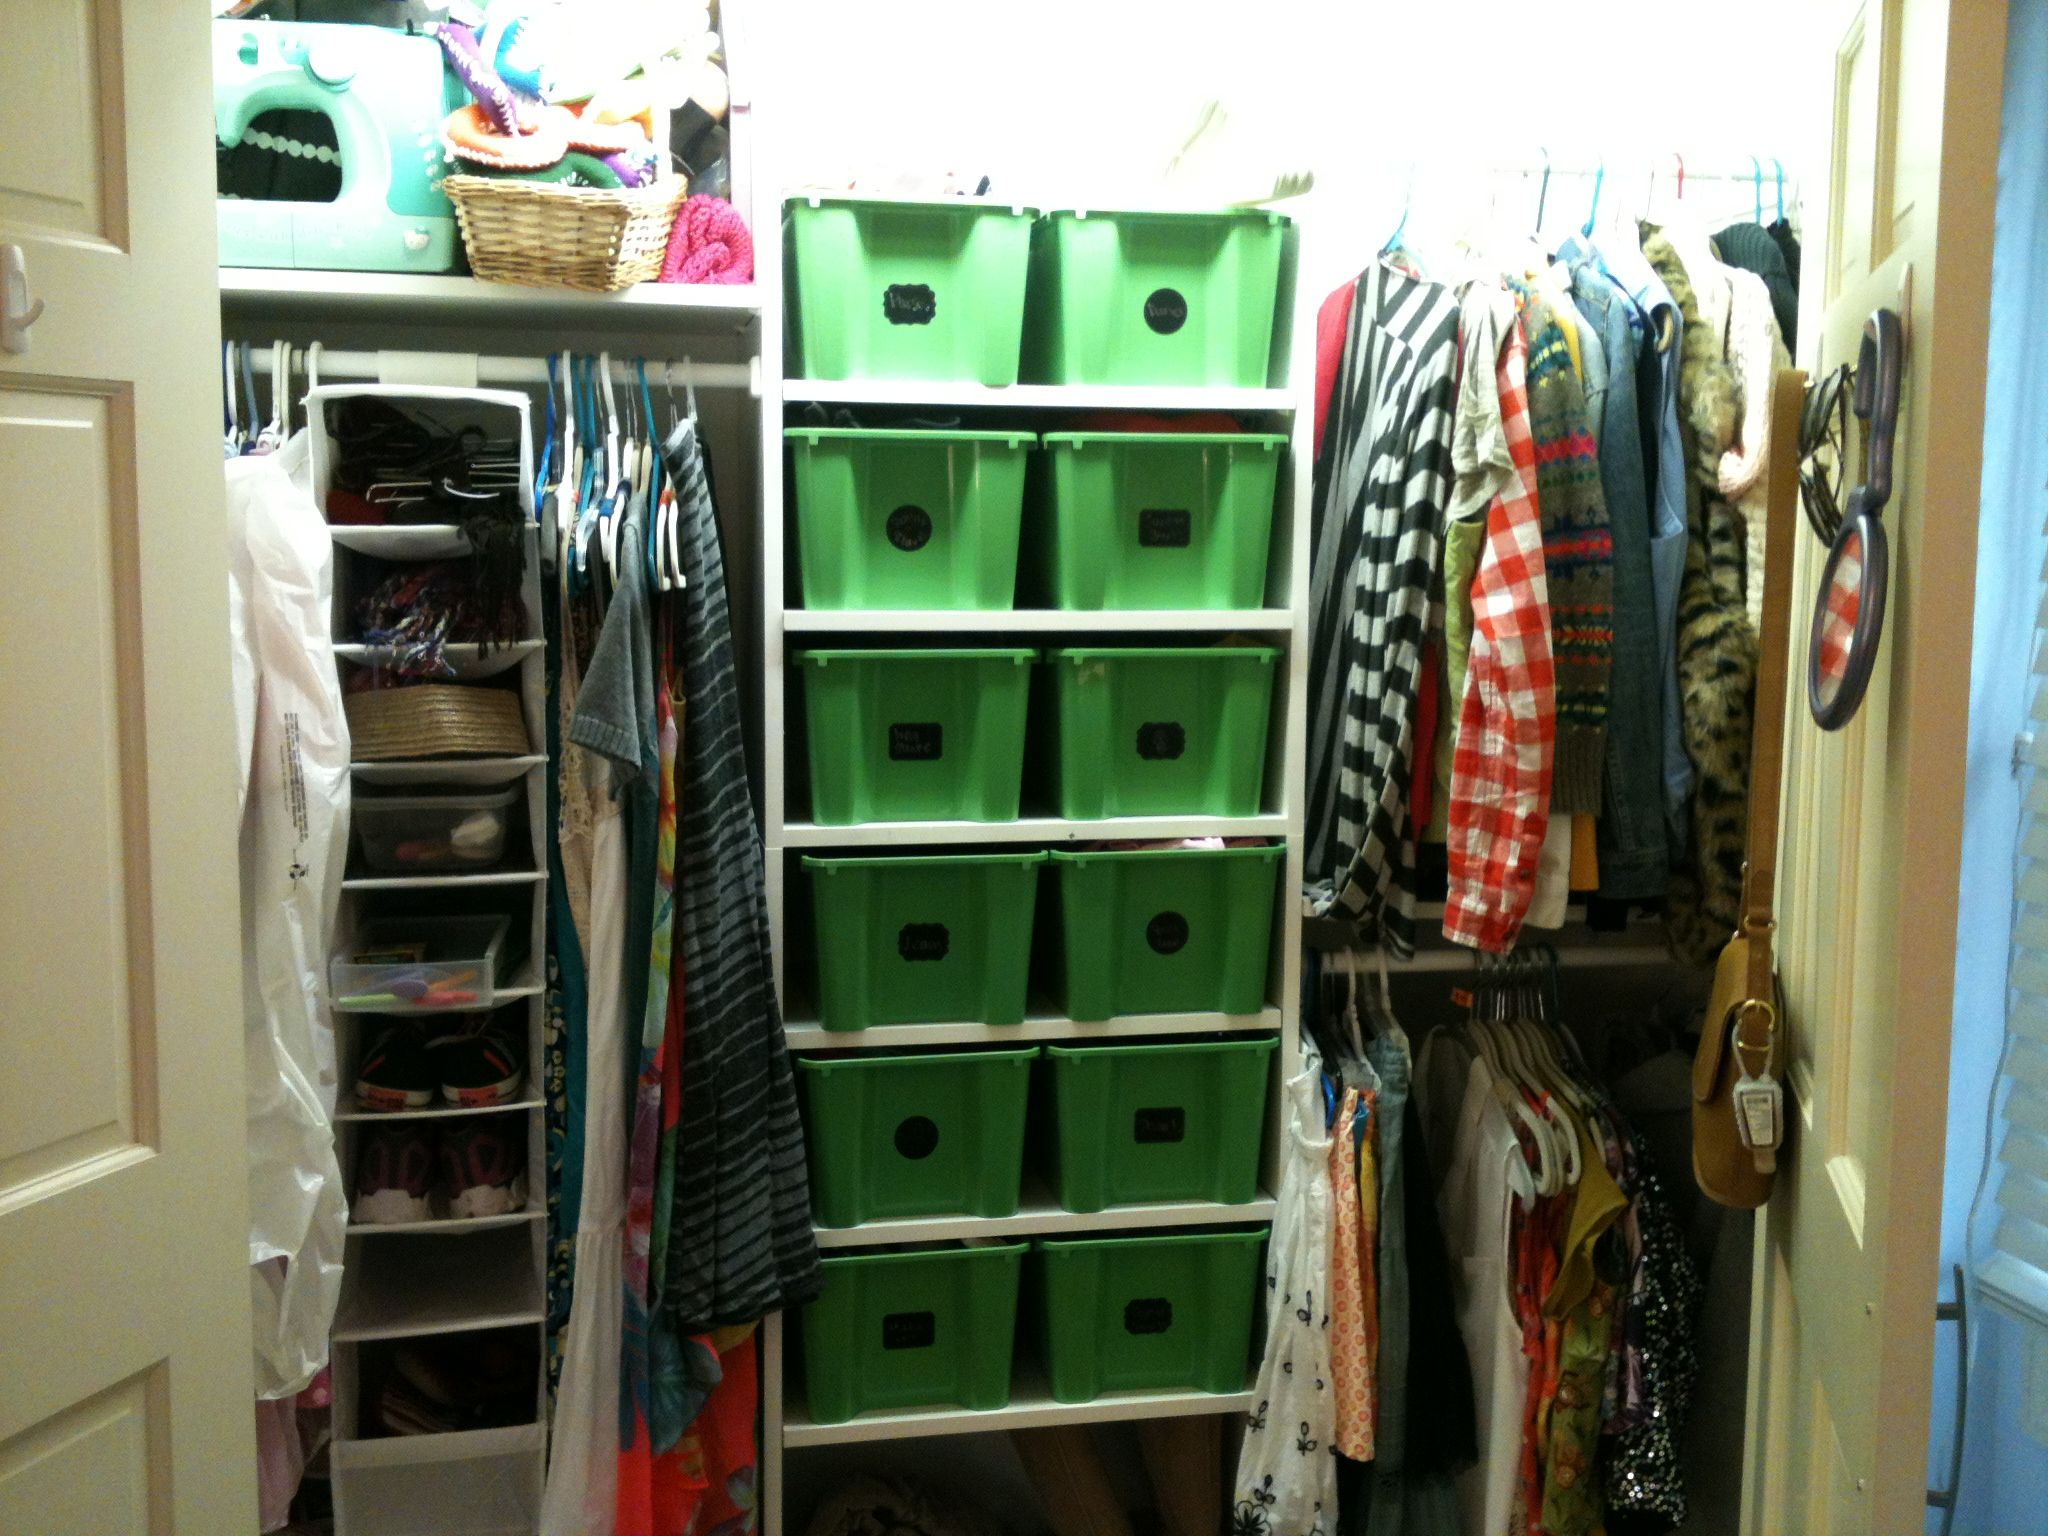 Ikea Gles Tubs And Chalkboard Stickers Tidy Closet